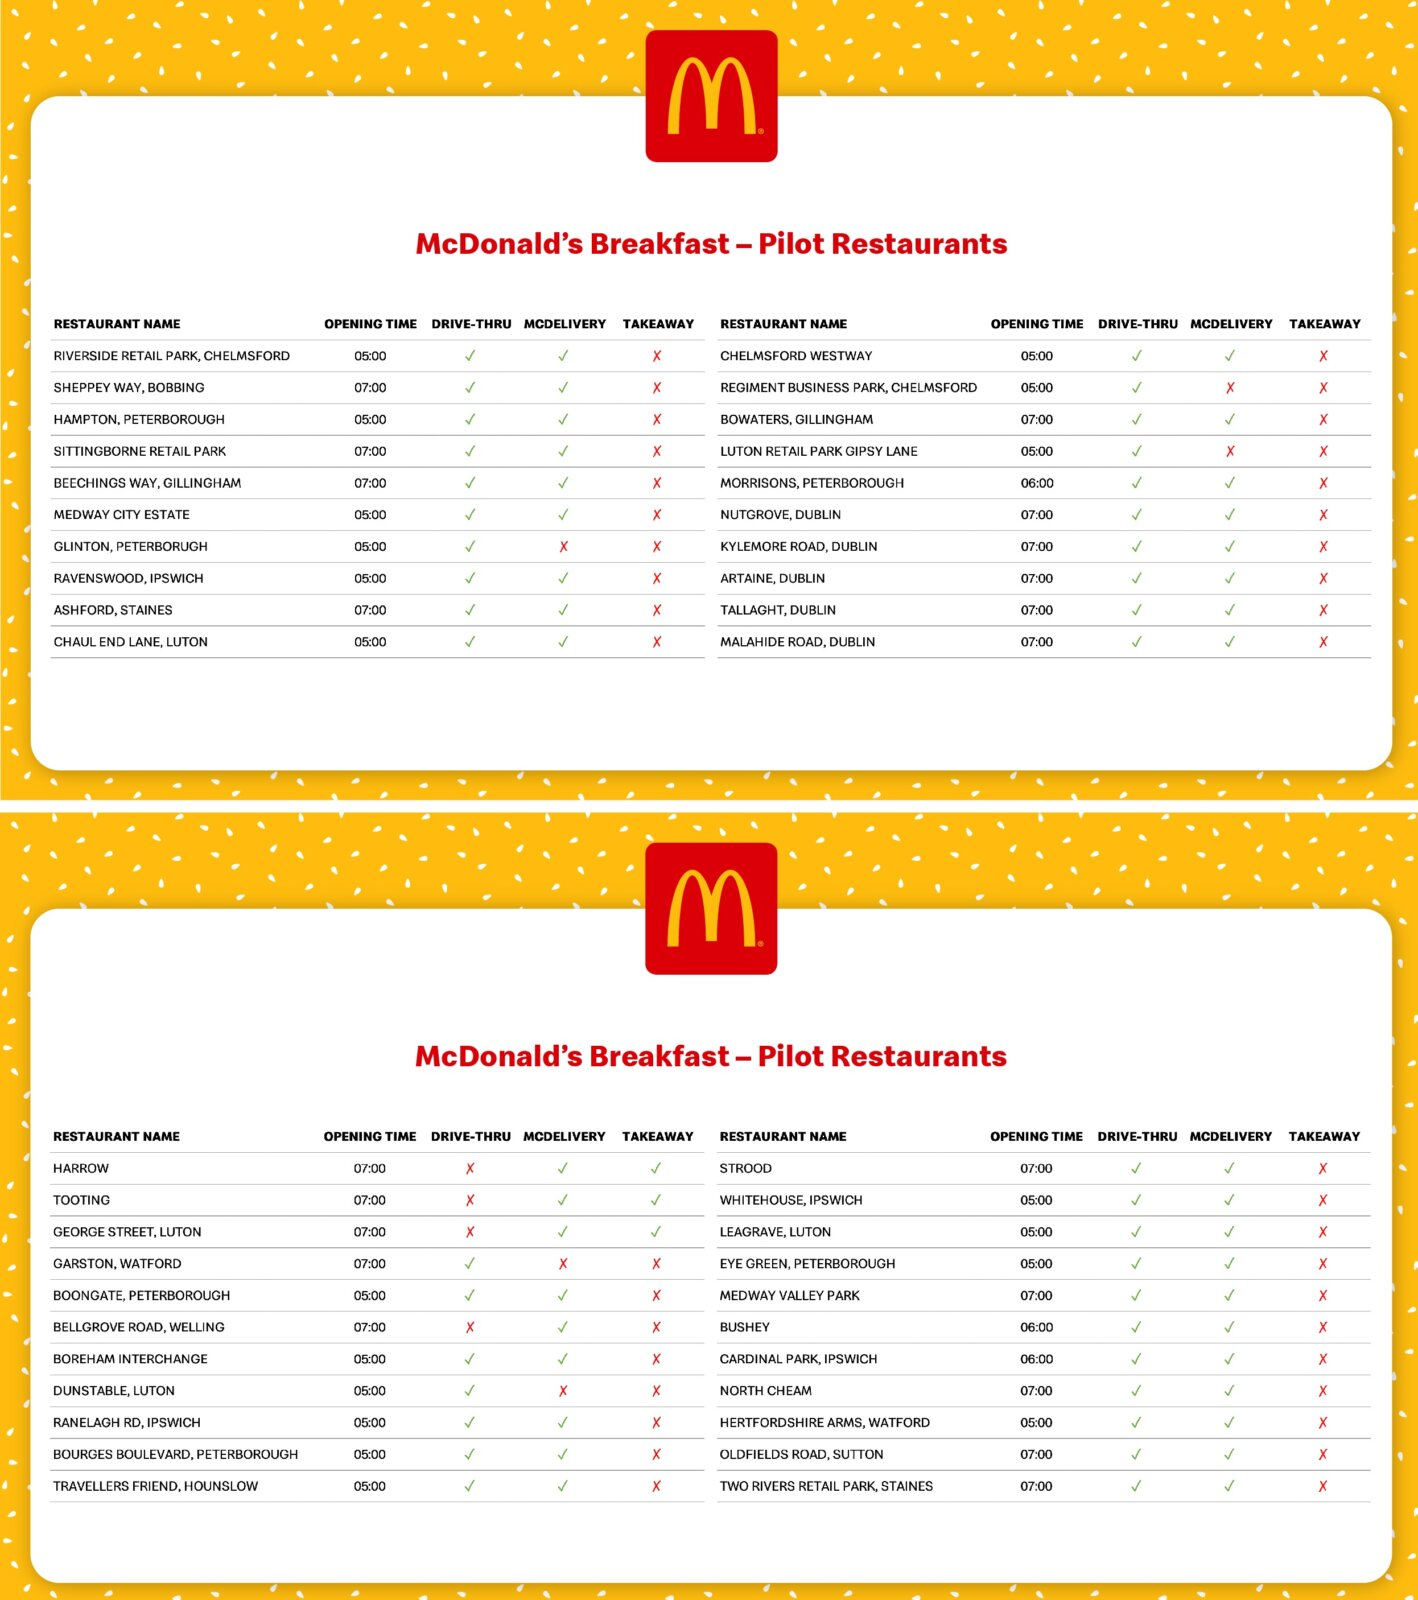 List of McDonald's restaurants to serve breakfast is grim reading for Mancunians, The Manc